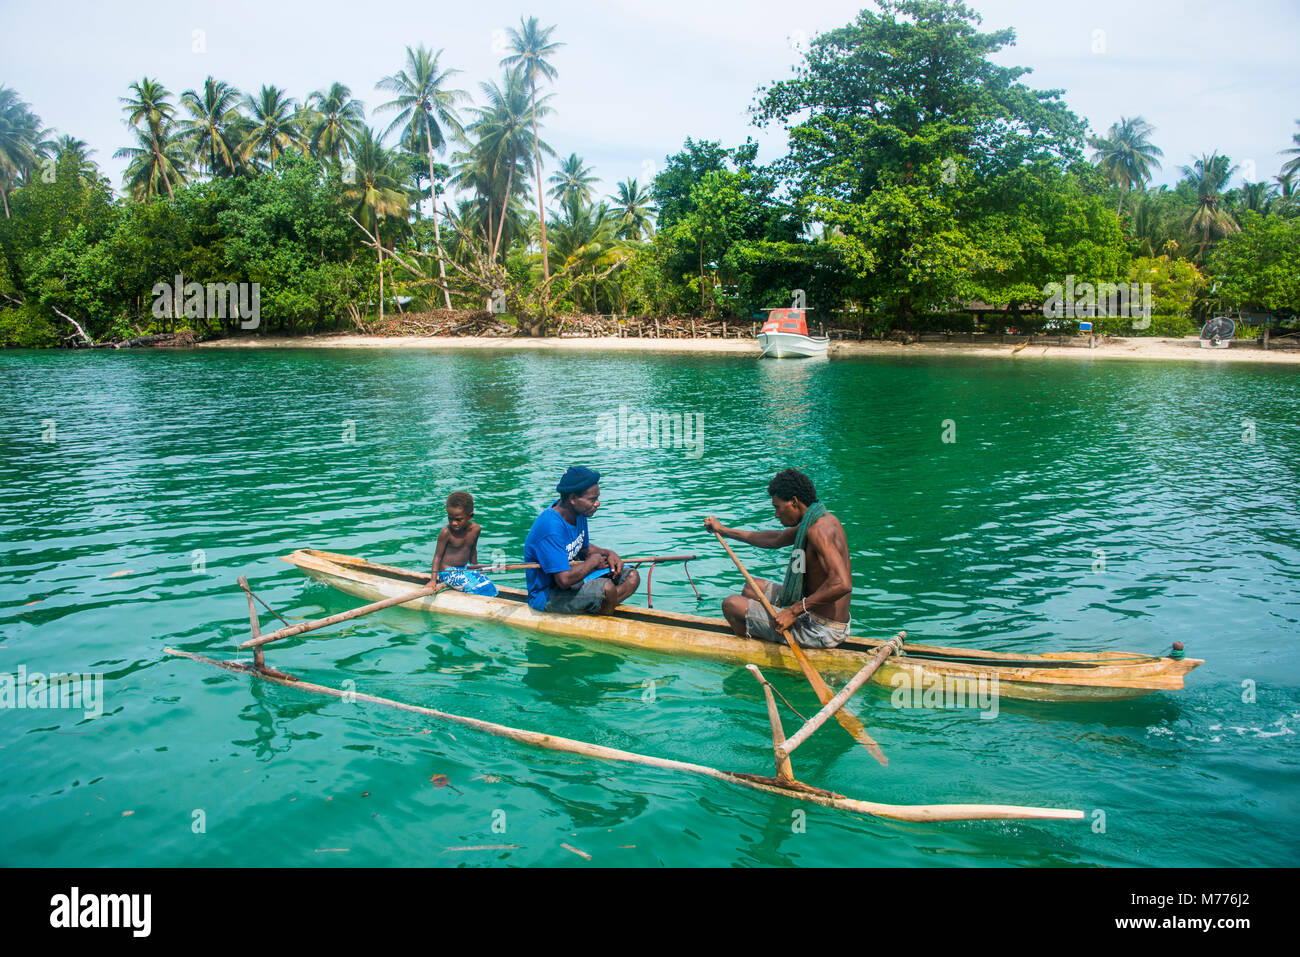 Locals in a dugout canoe, Kavieng, New Ireland, Papua New Guinea, Pacific - Stock Image